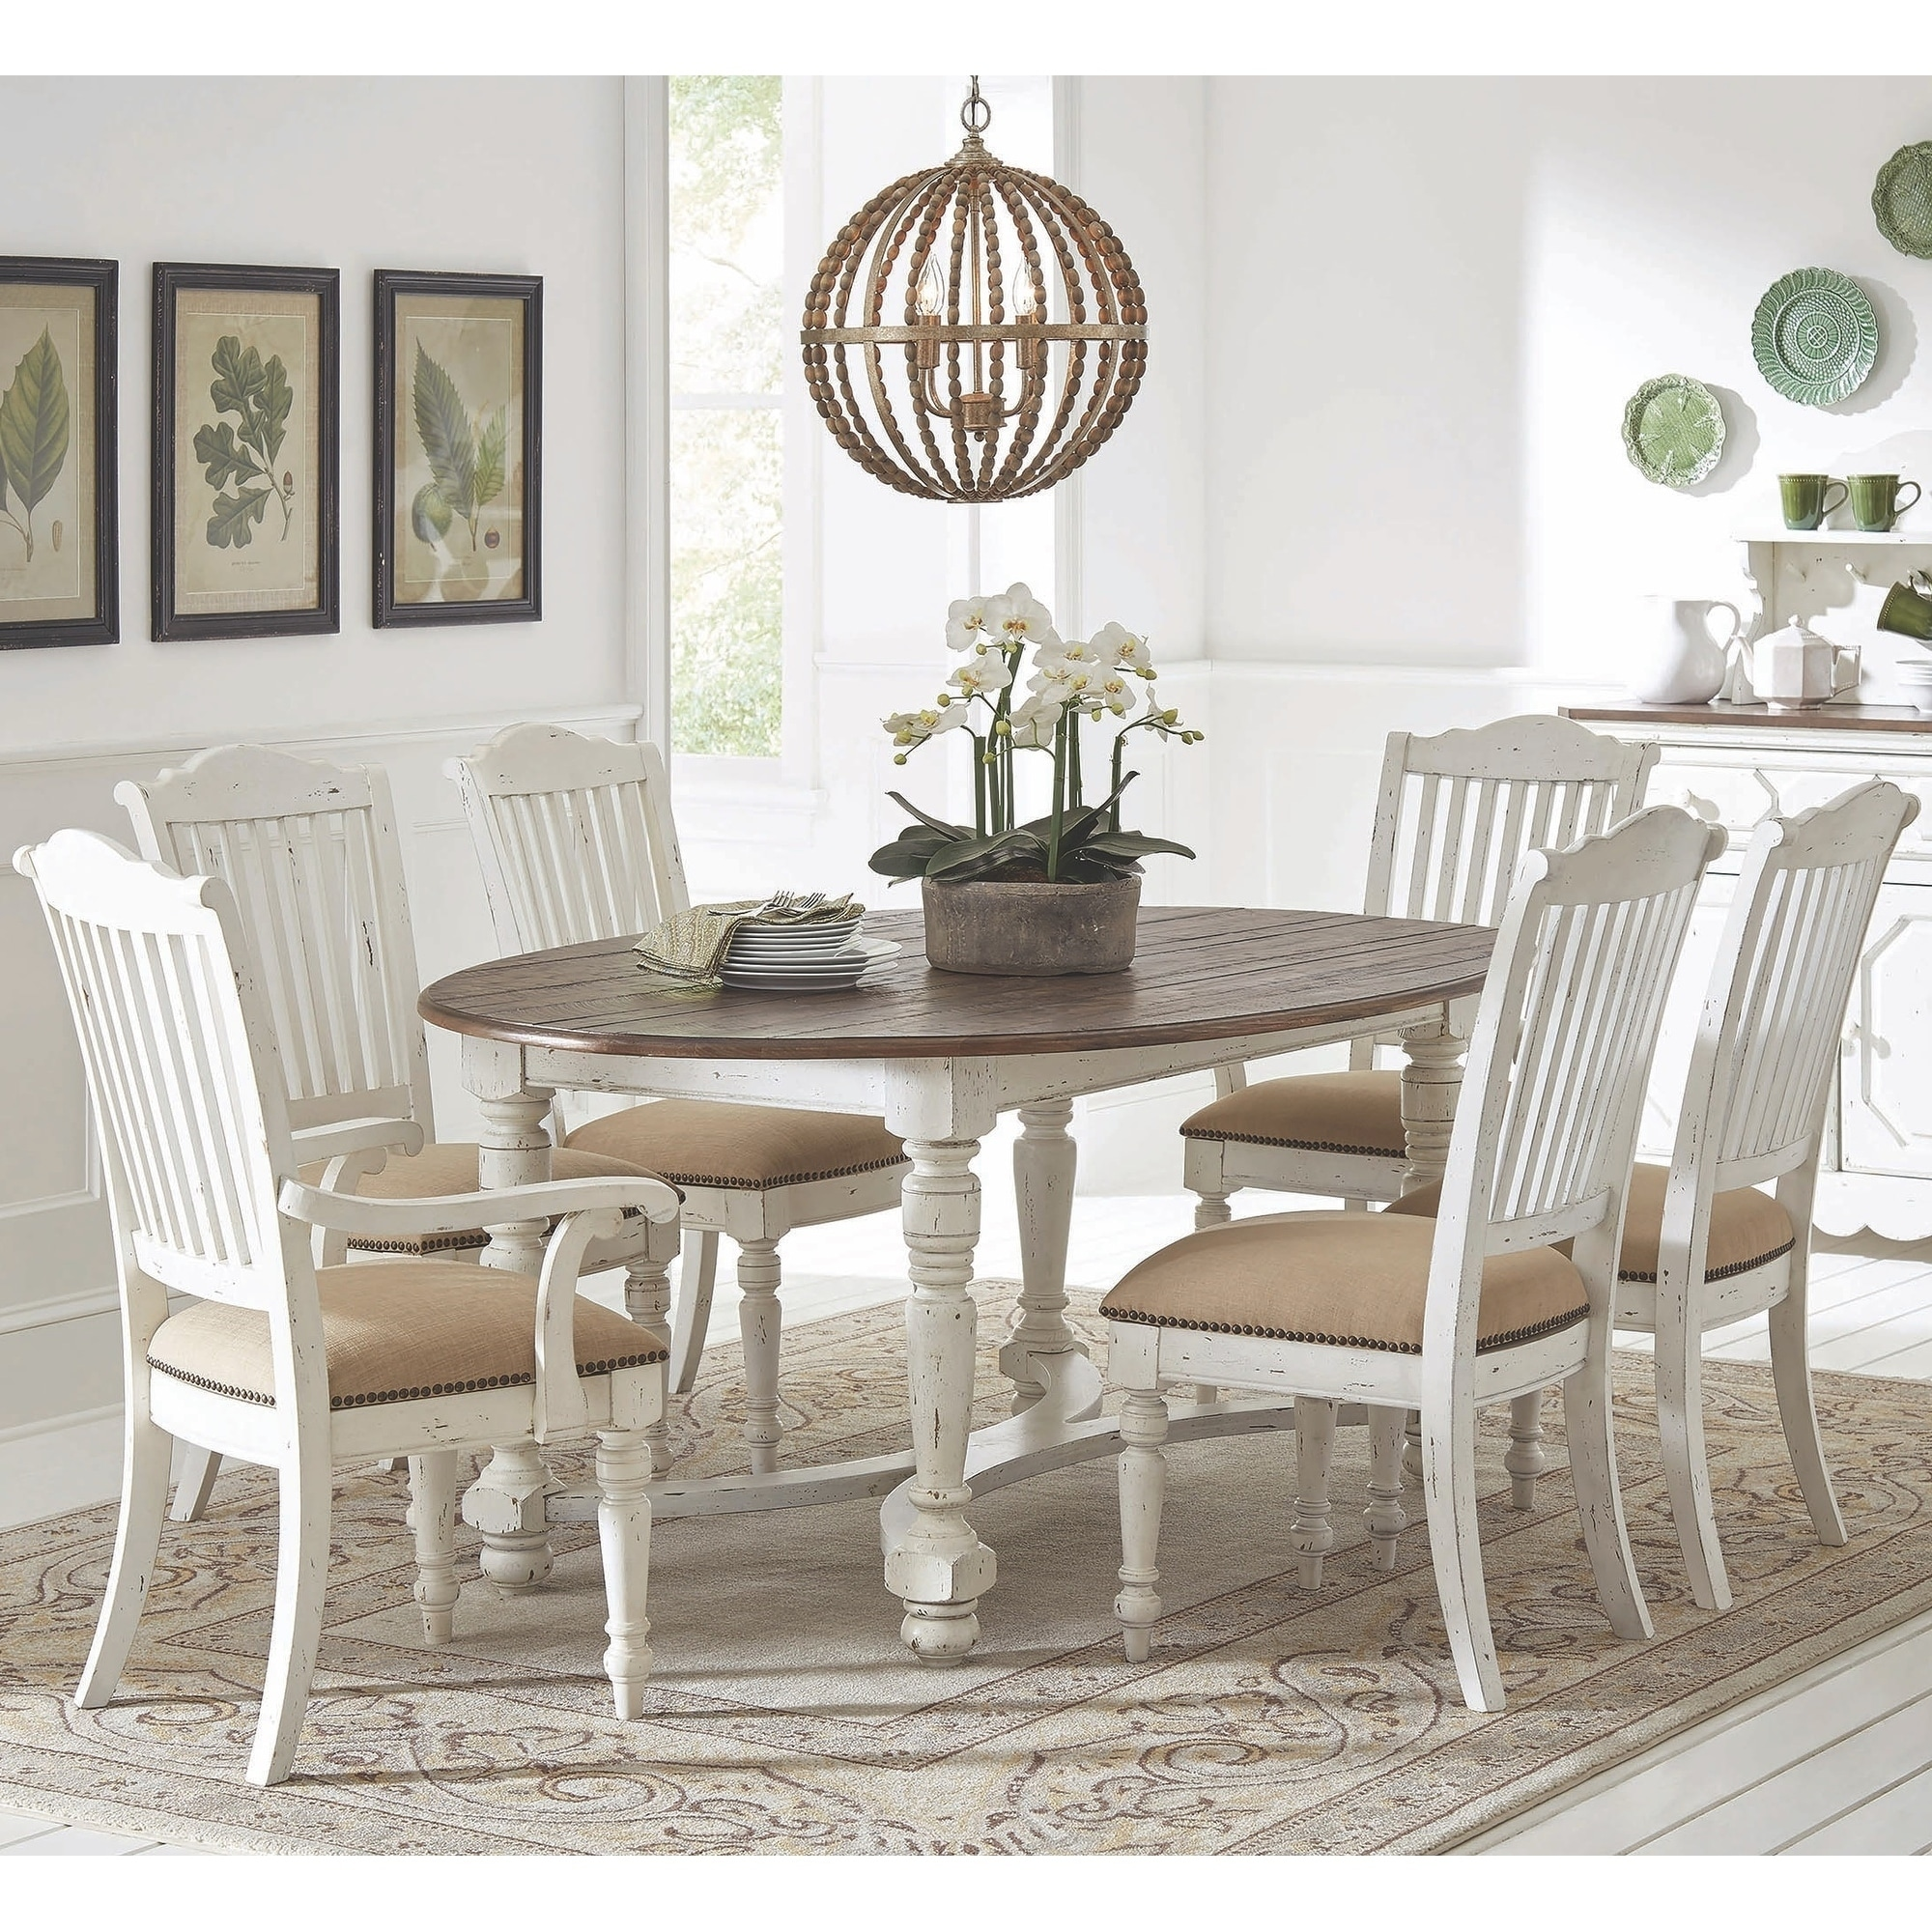 Rustic Farmhouse Design Weathered Two Tone Oval Dining Set On Sale Overstock 28699767